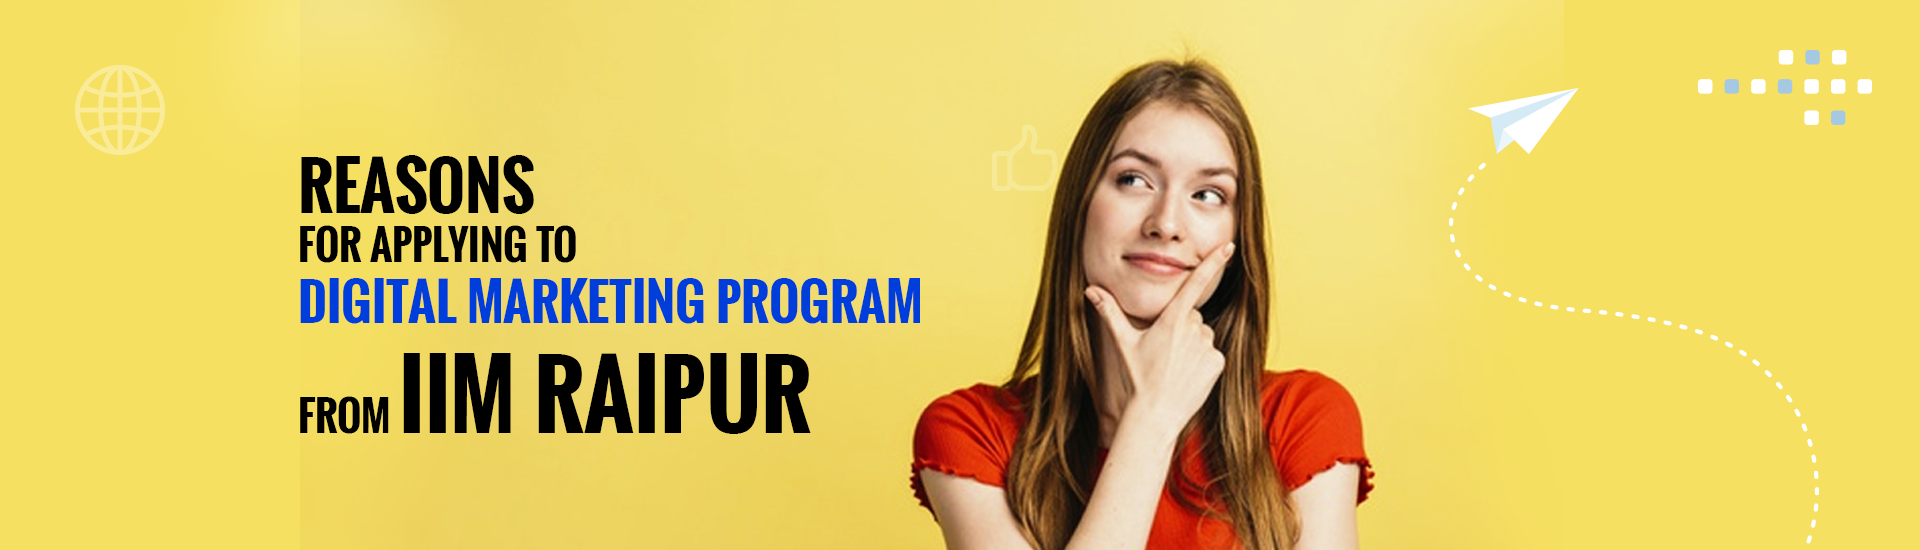 IIM Raipur digital marketing courses